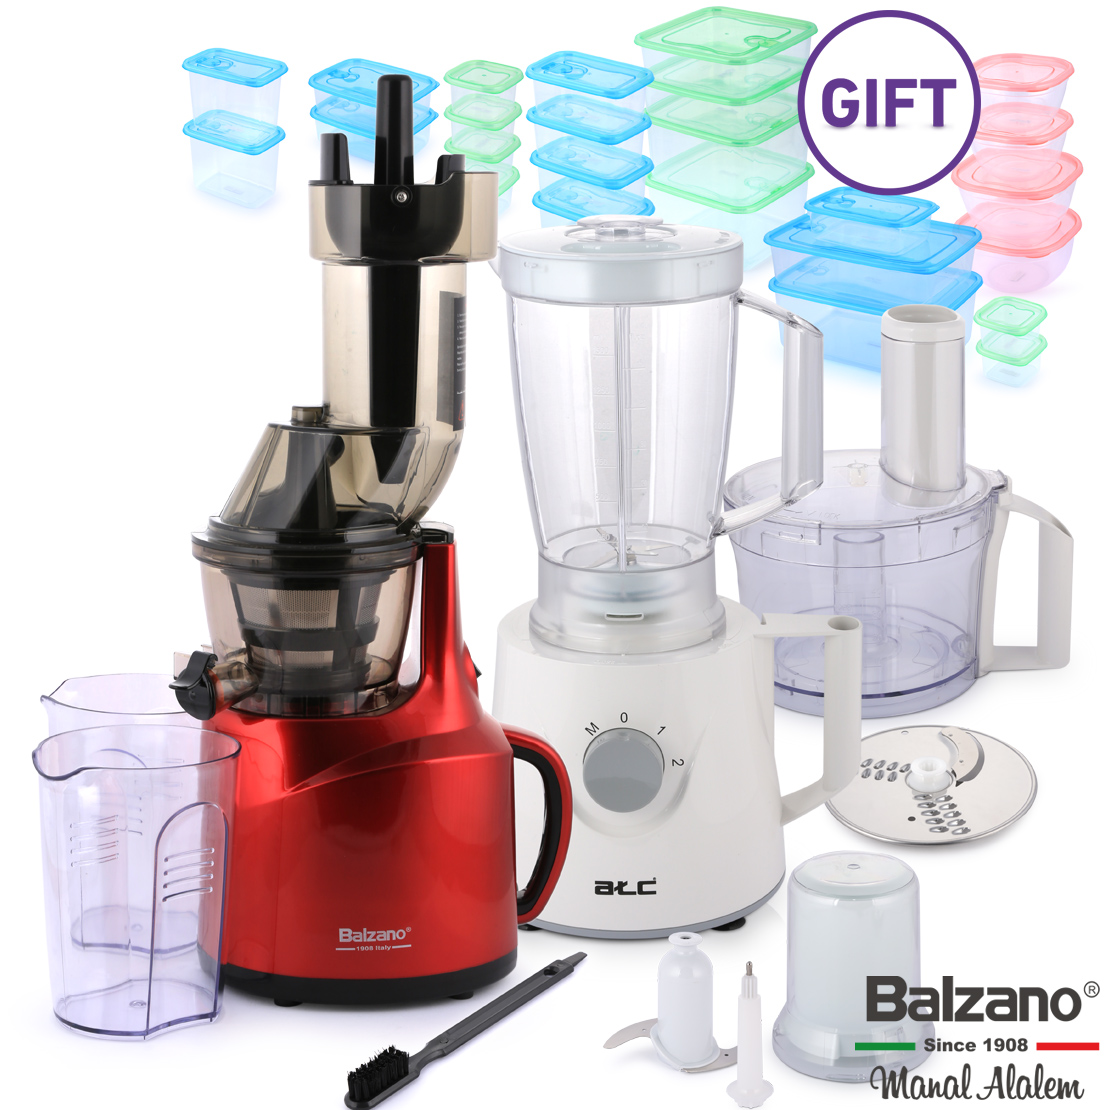 Whole Mouth Slow Juicer Red & Gifts